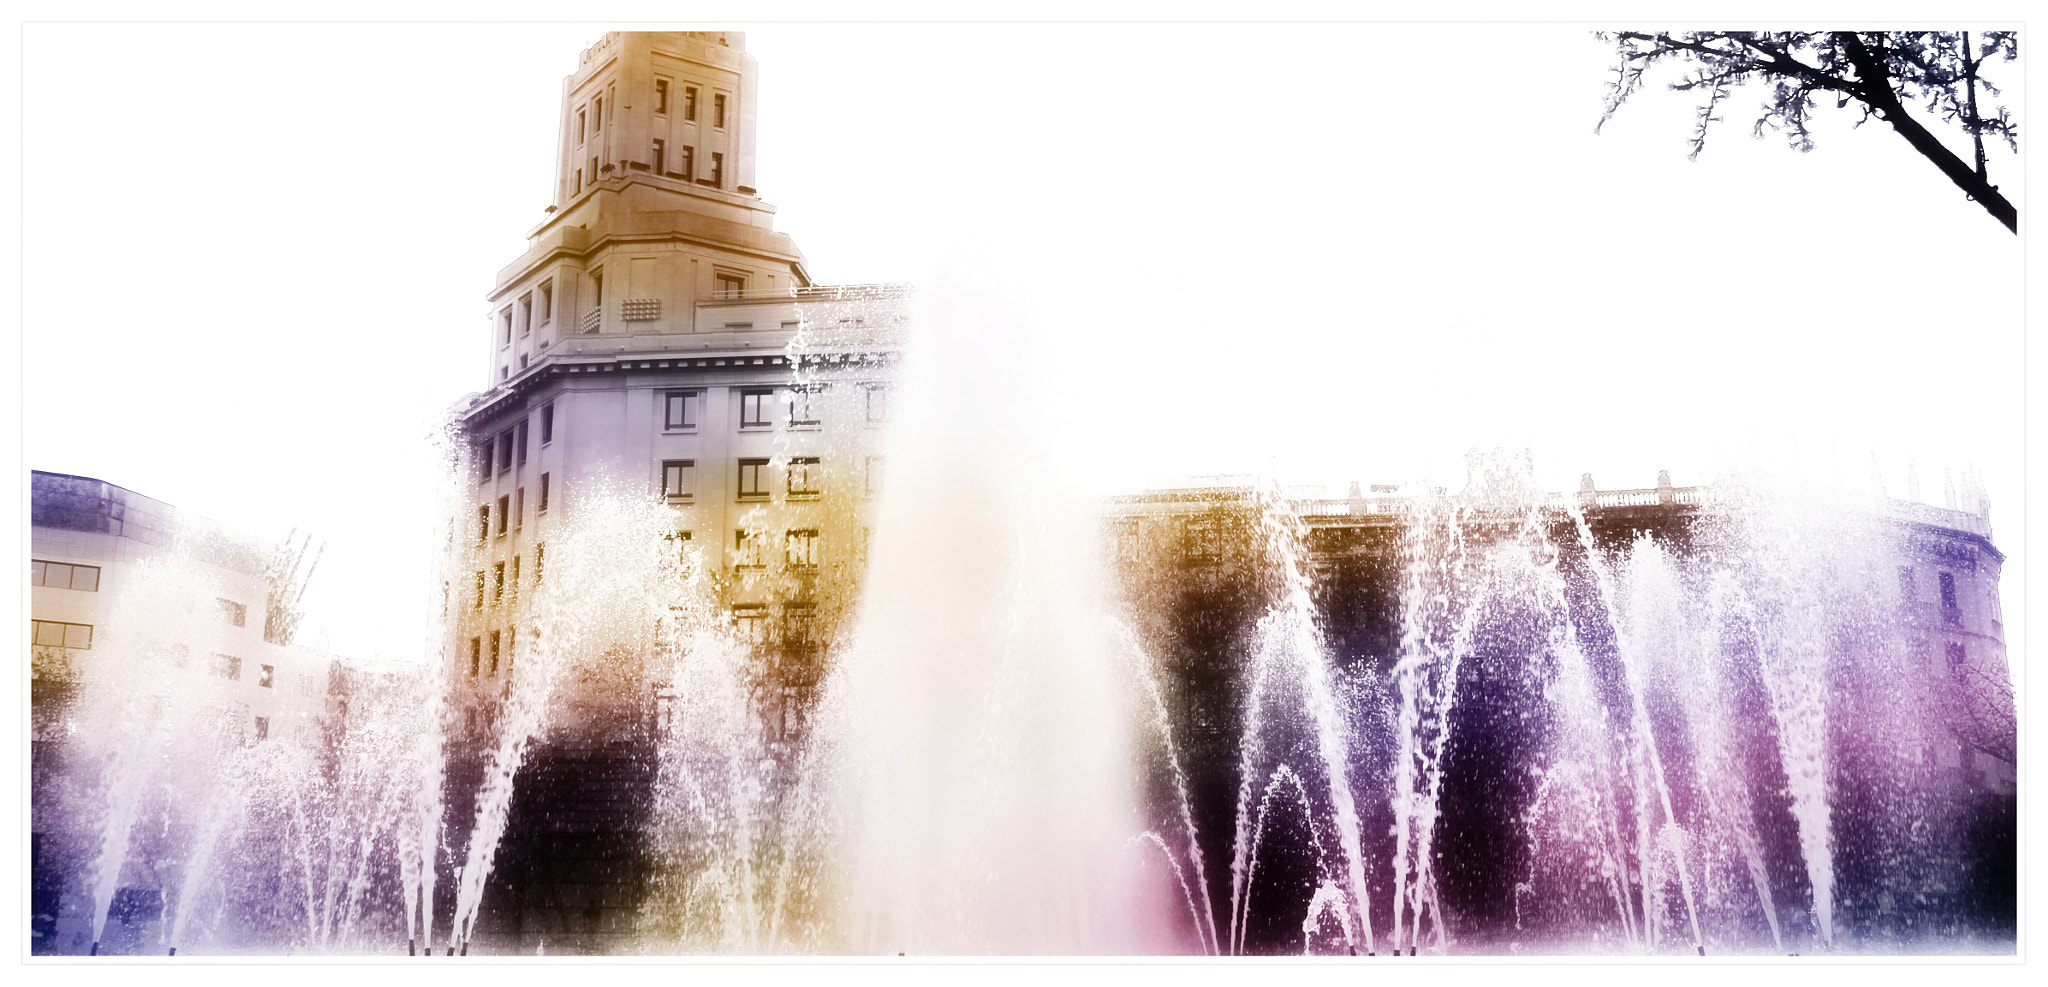 Photograph Fountain by Anne Costello on 500px